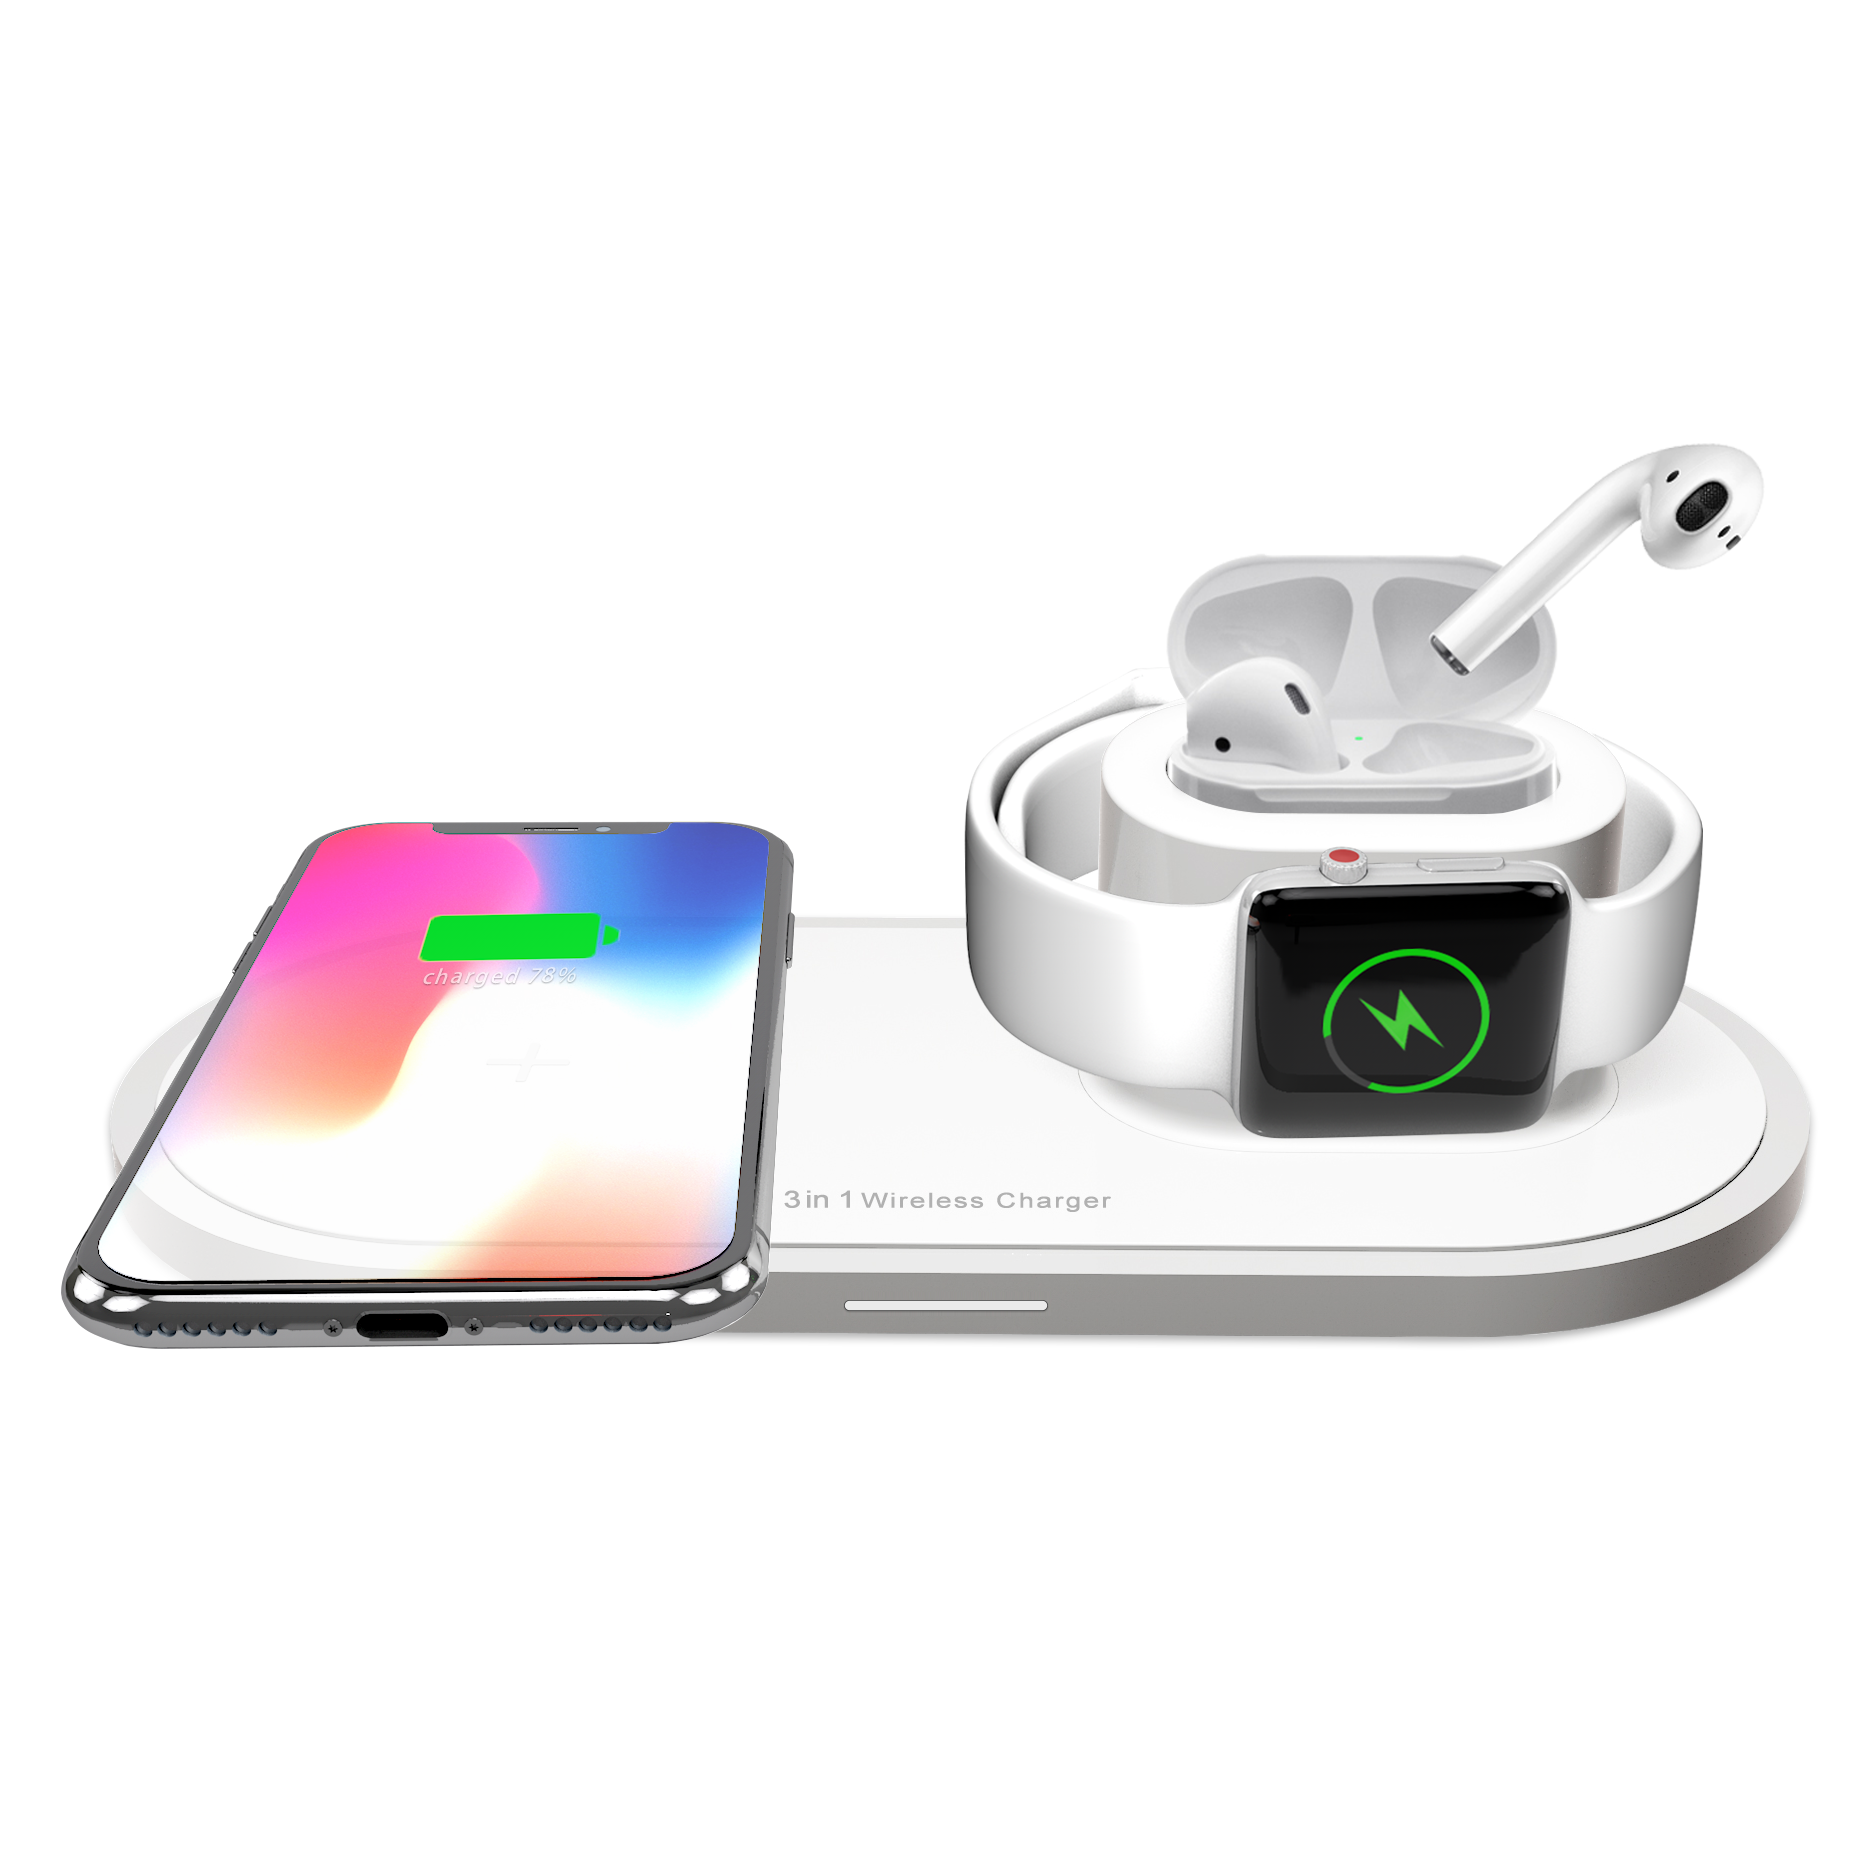 Bakeey 3in1 10W Qi LED Indicator Quick Charger Wireless Charging Dock Station for iPhone 11 TWS Airdots SmartWatch for Samsung S10+ HUAWEI Xiaomi